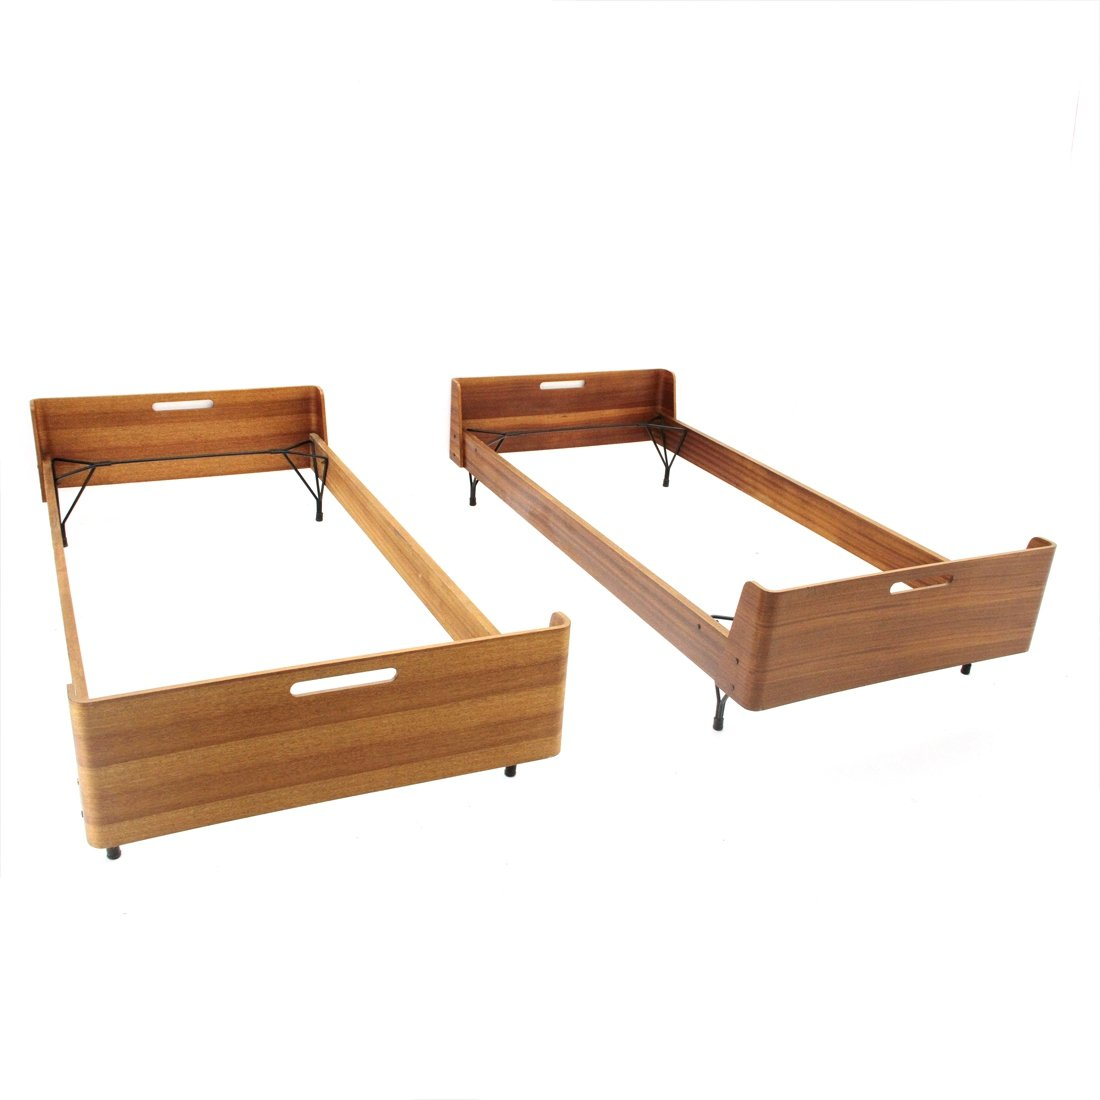 Pair Of Midcentury Beds By Gastone Rinaldi For Rima 1950s 114344